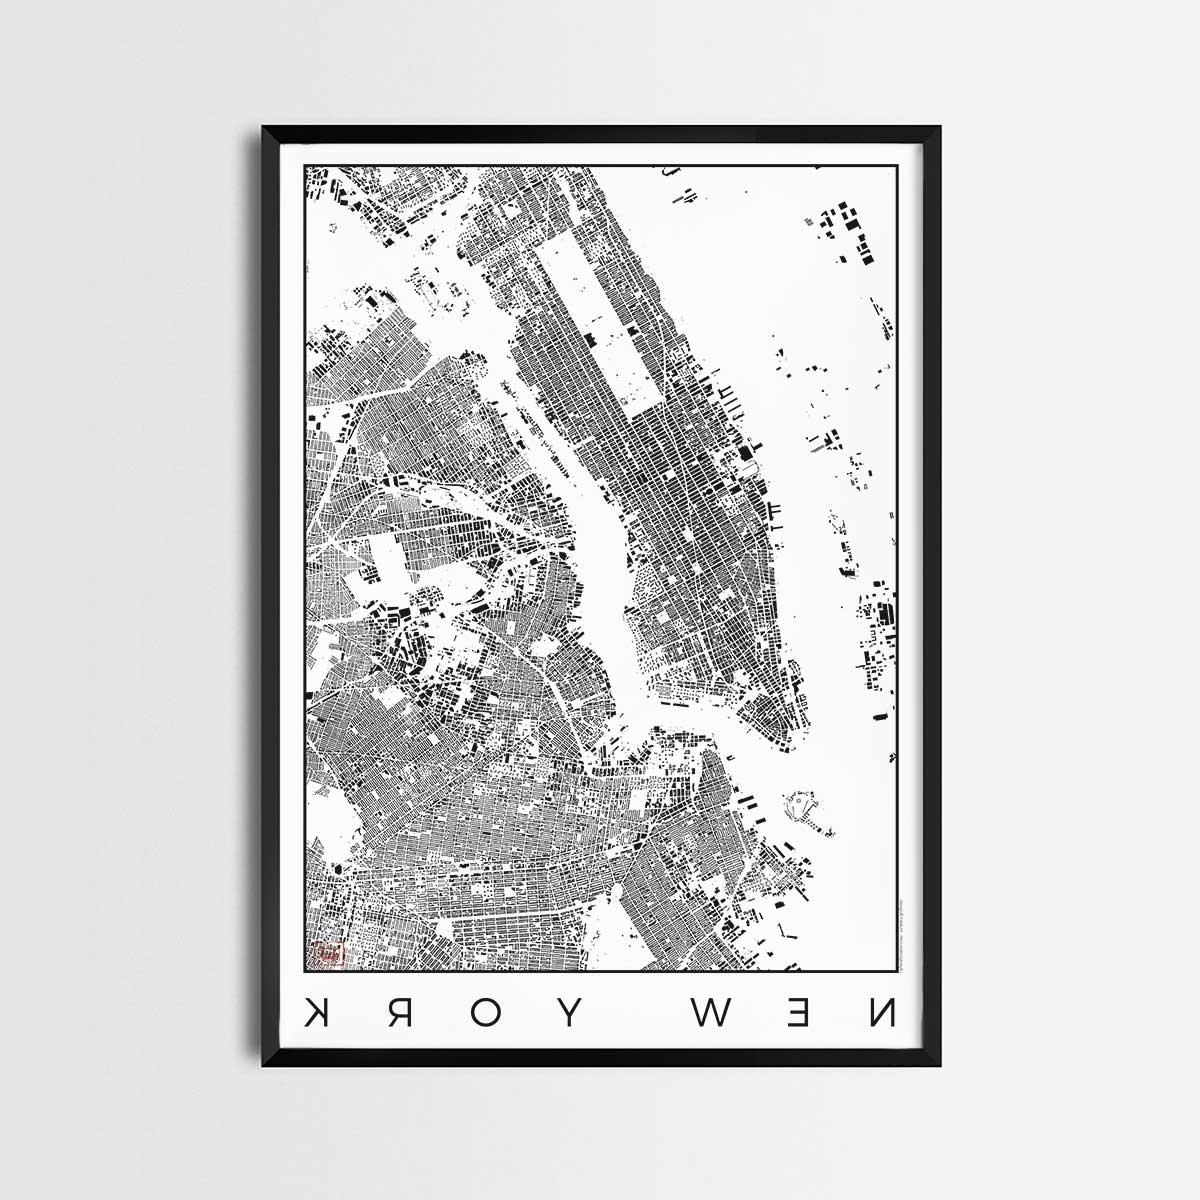 New York City Map Print Amazon Com Subway Poster Nyc – Smartsync Within Most Popular New York Subway Map Wall Art (View 6 of 20)